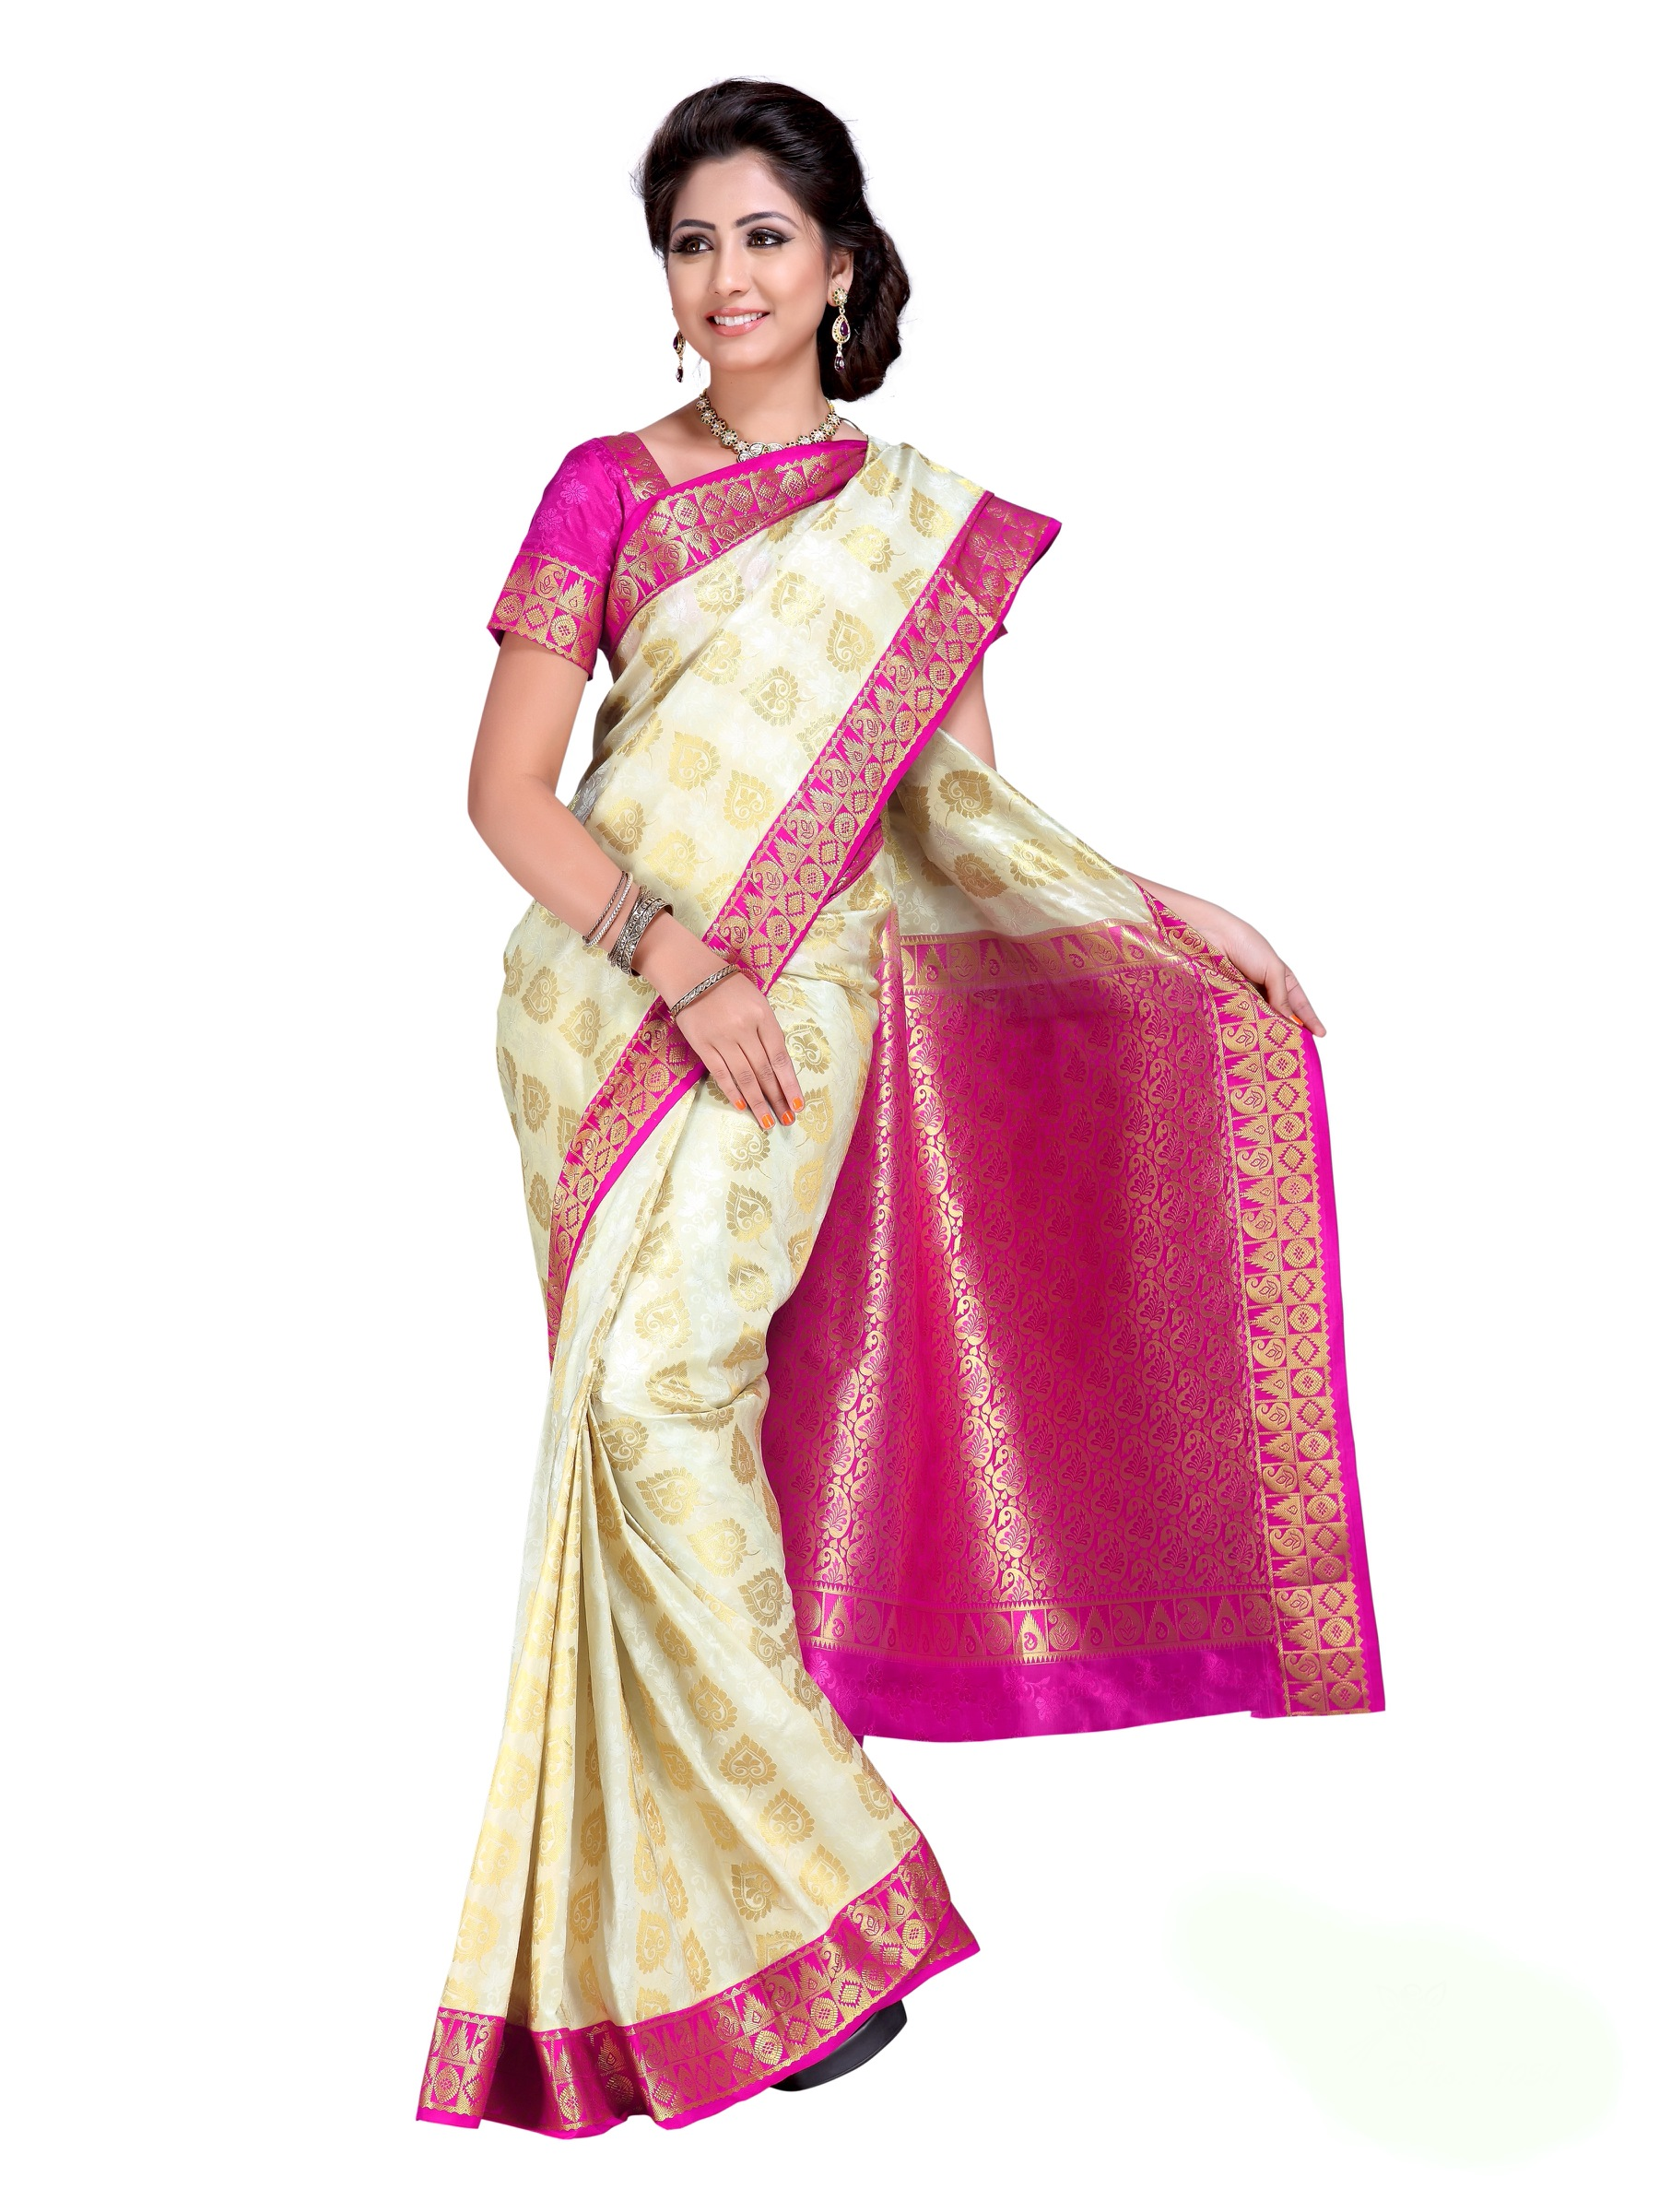 8b52cd99d1 off white and rani pink woven art silk saree with blouse - Aayori - 462264